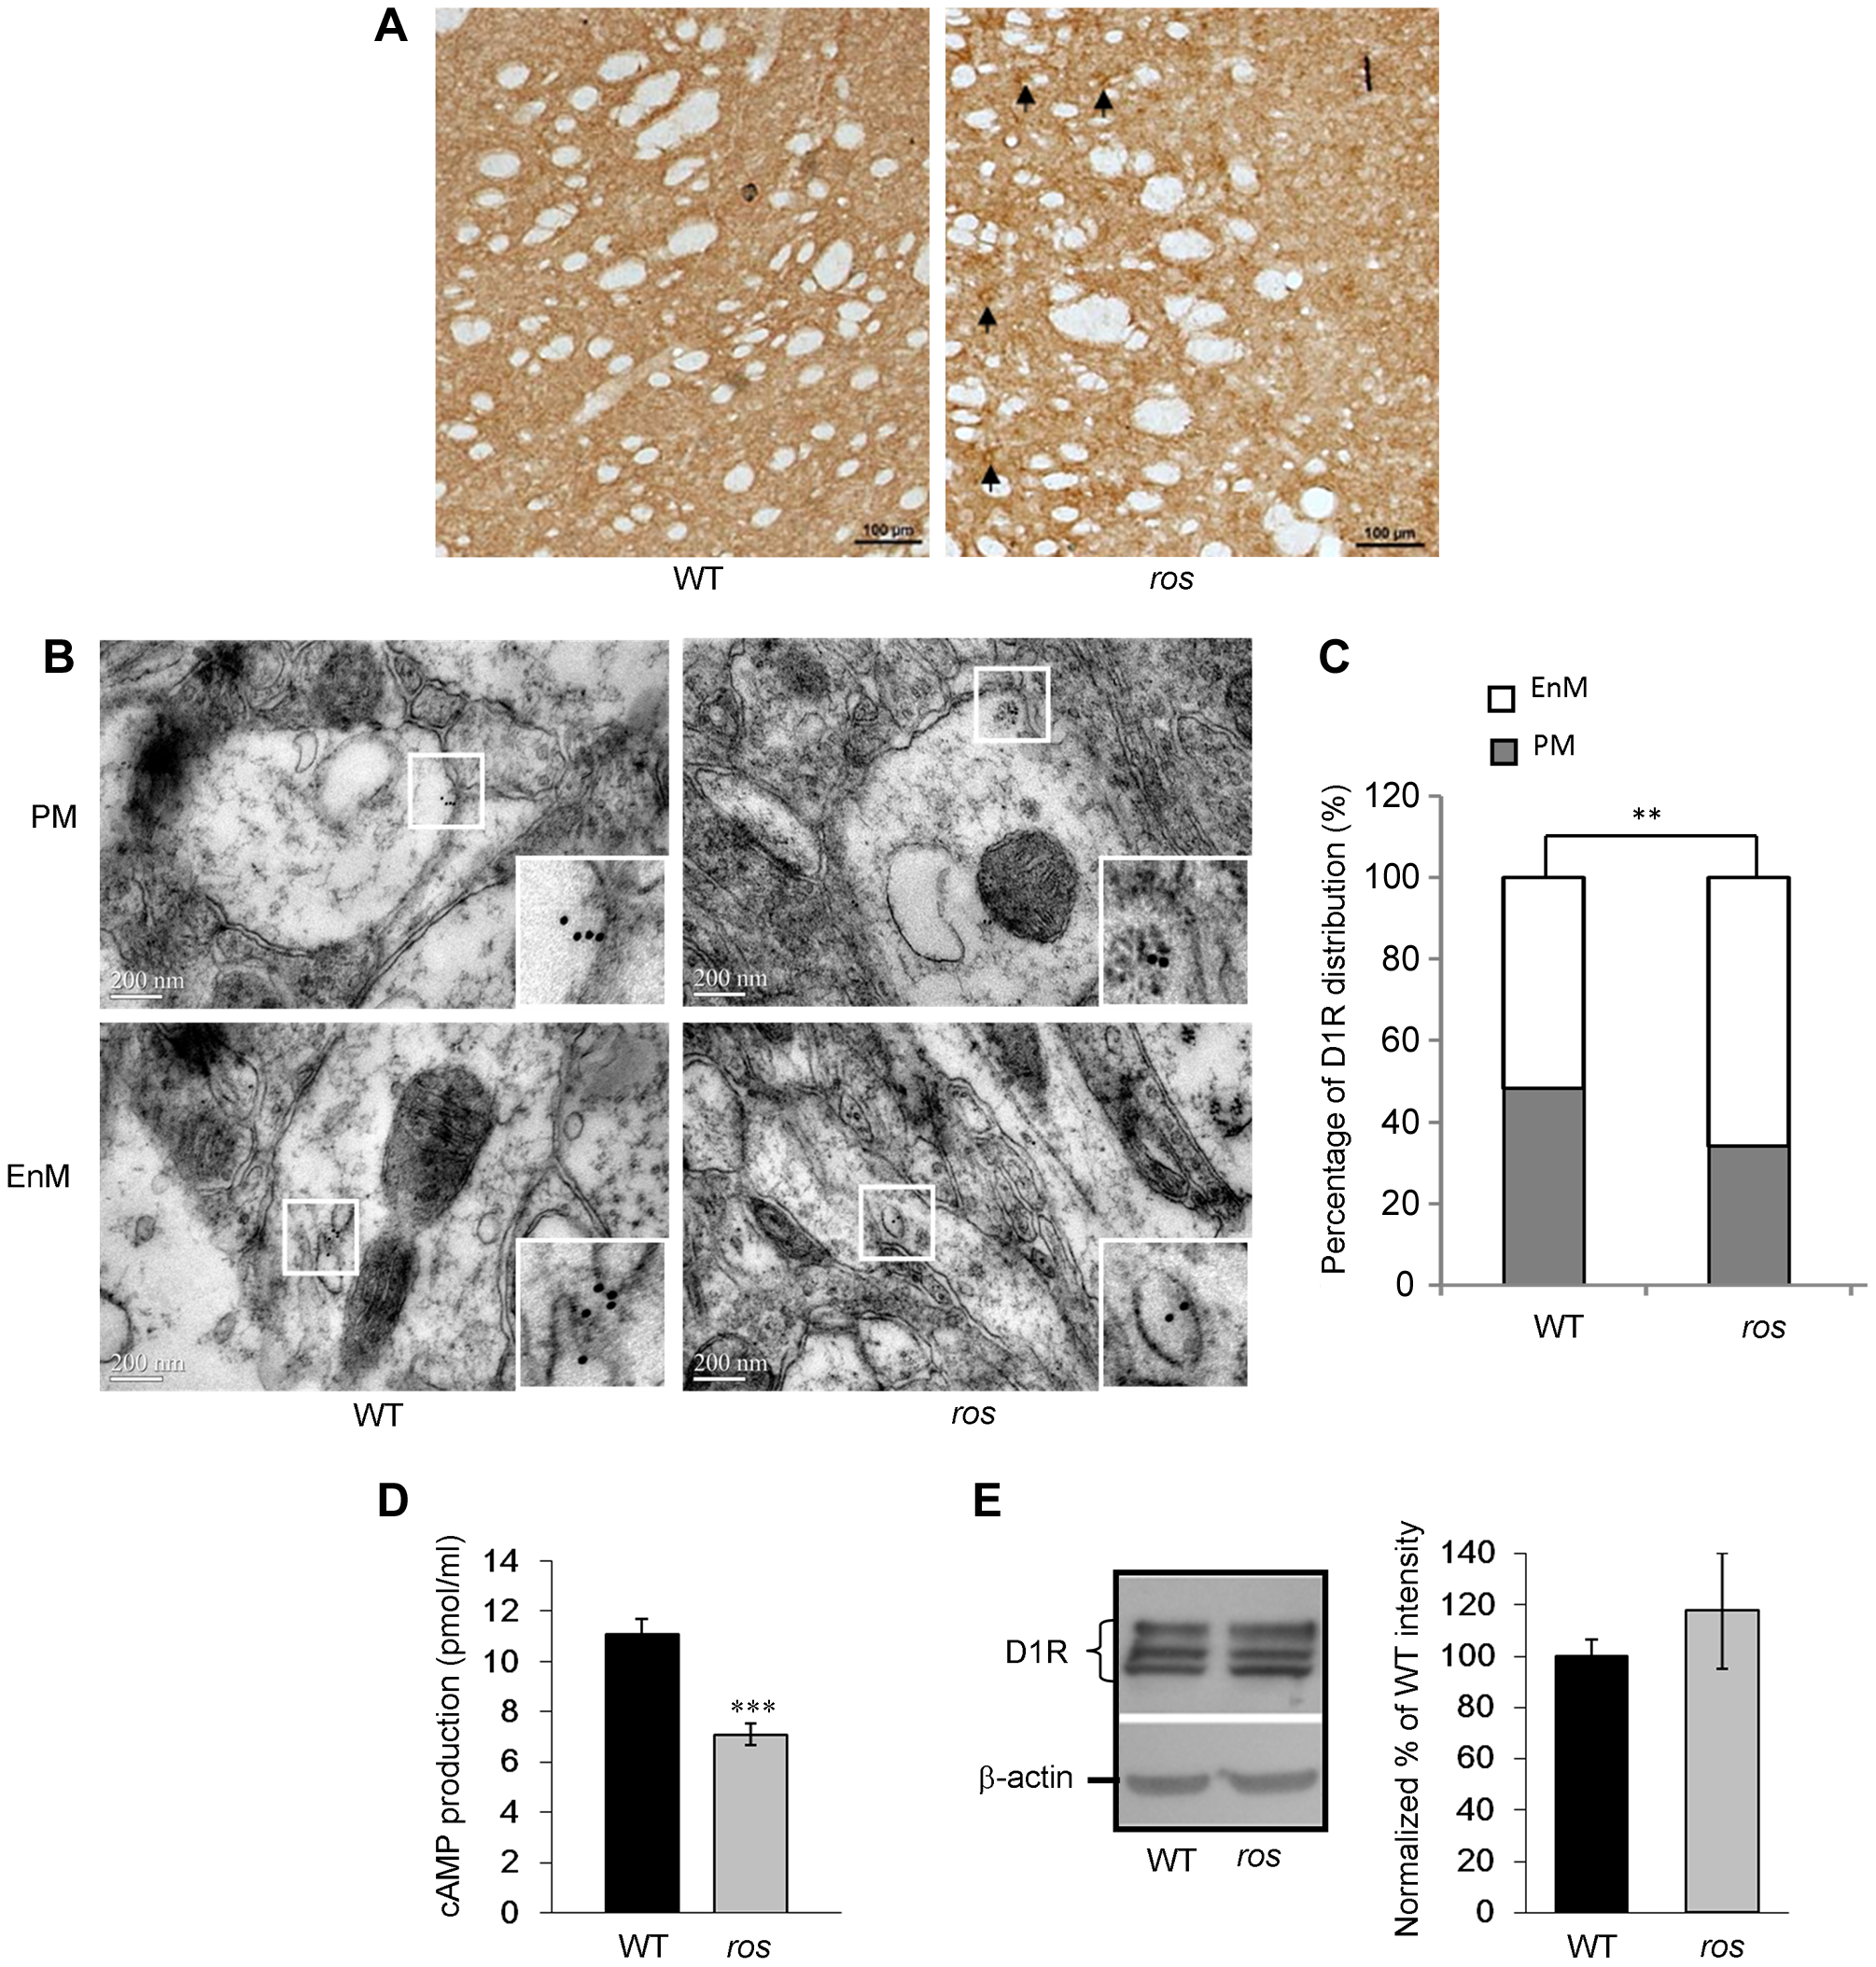 Plasma membrane D1R and its signaling are reduced in <i>ros</i> striatonigral neurons.